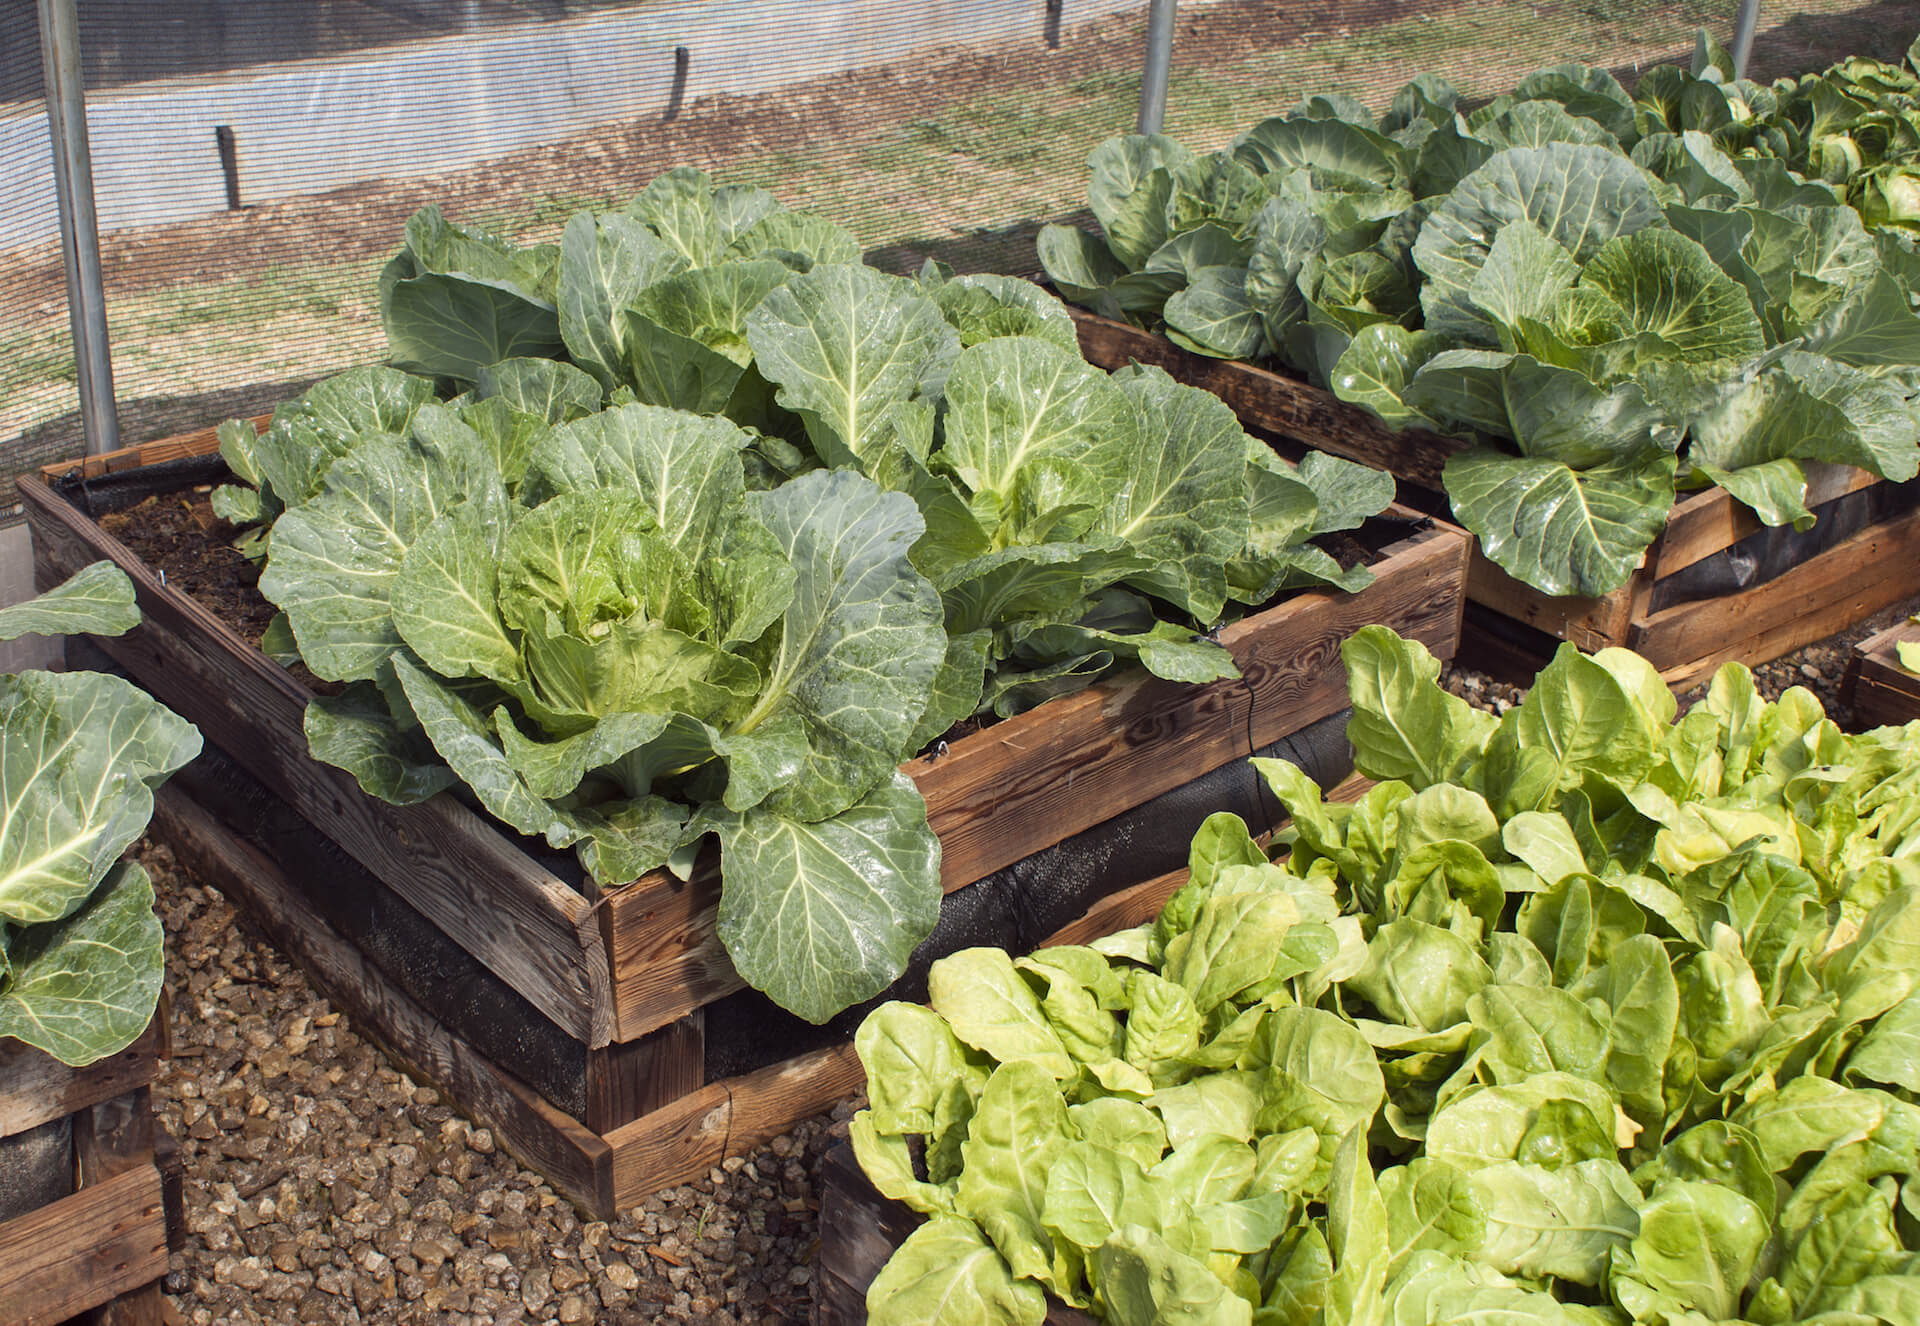 Raised bed vegetable garden growing large, leafy greens.